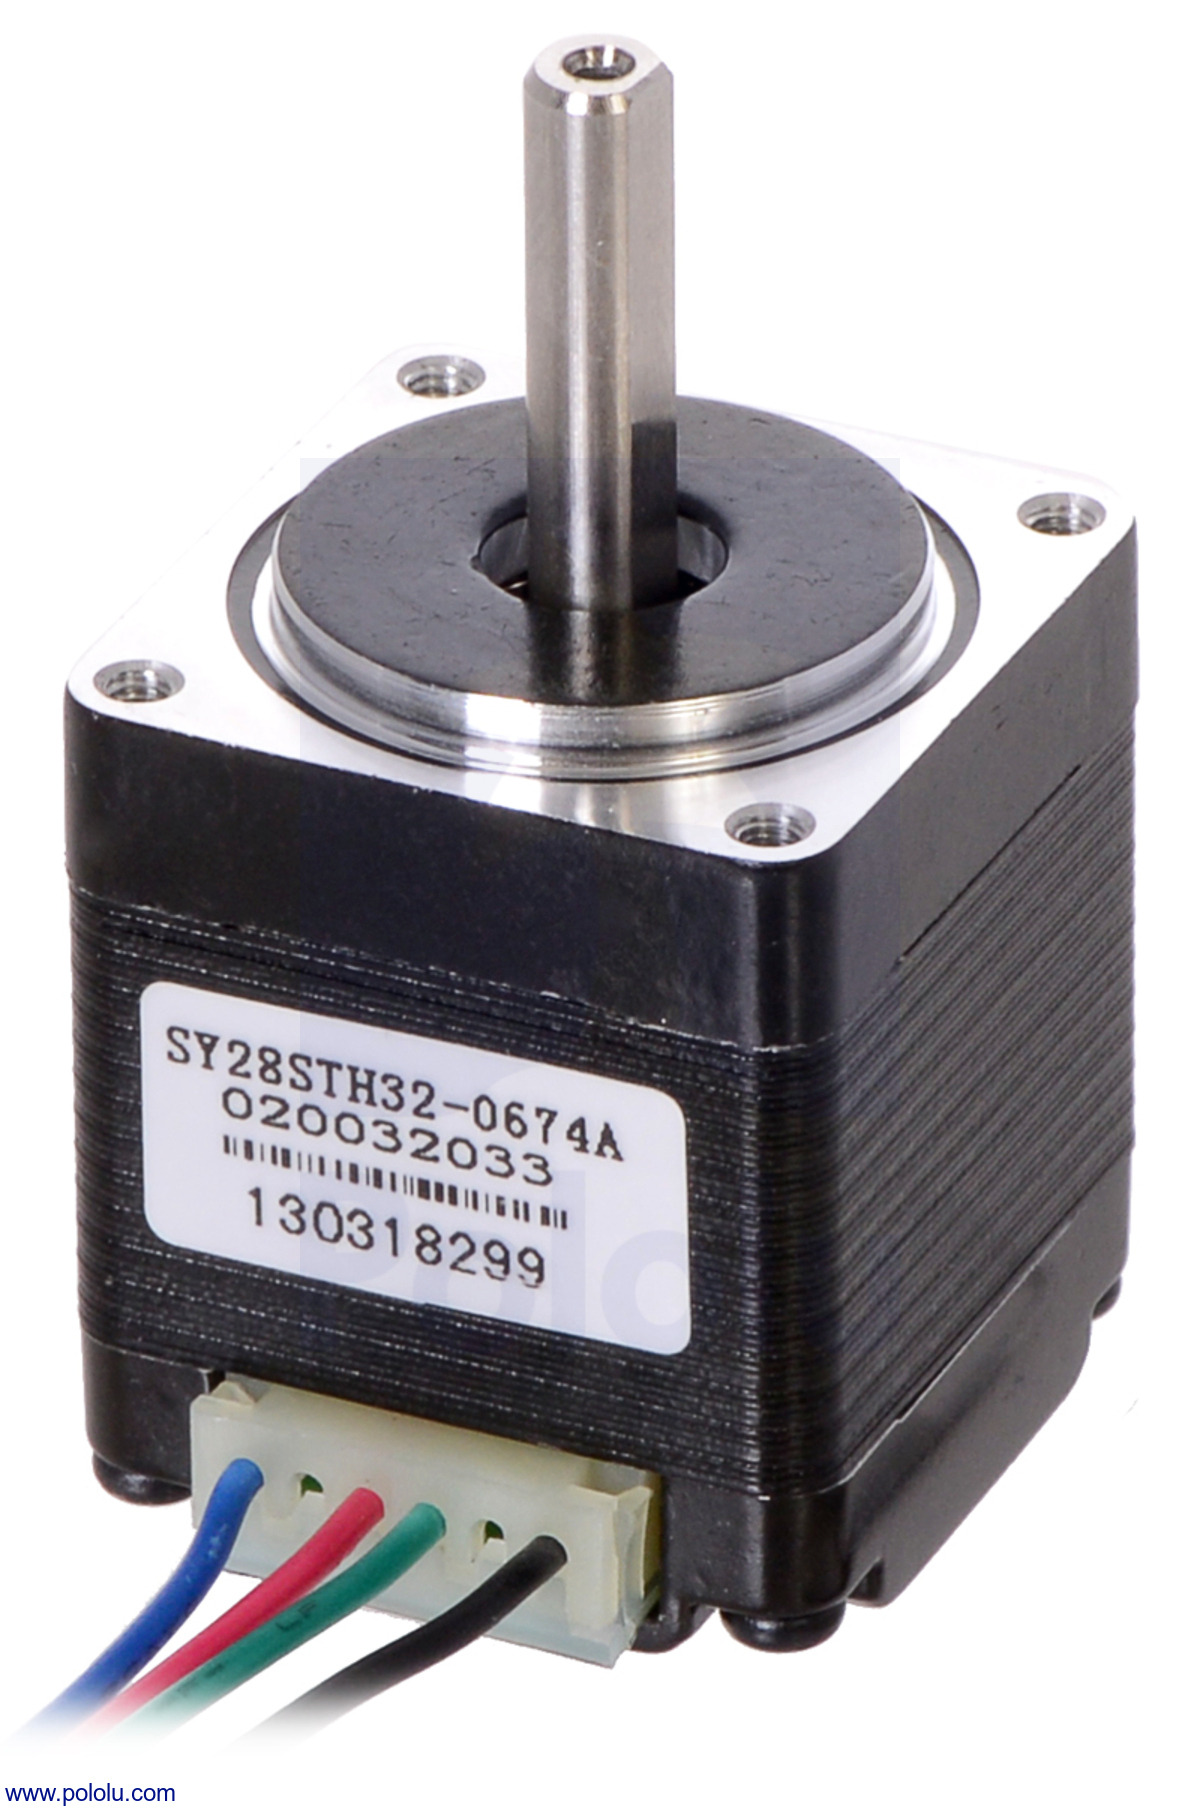 Wire Stepper Motor Wiring Color Code Also 4 Wire Stepper Motor